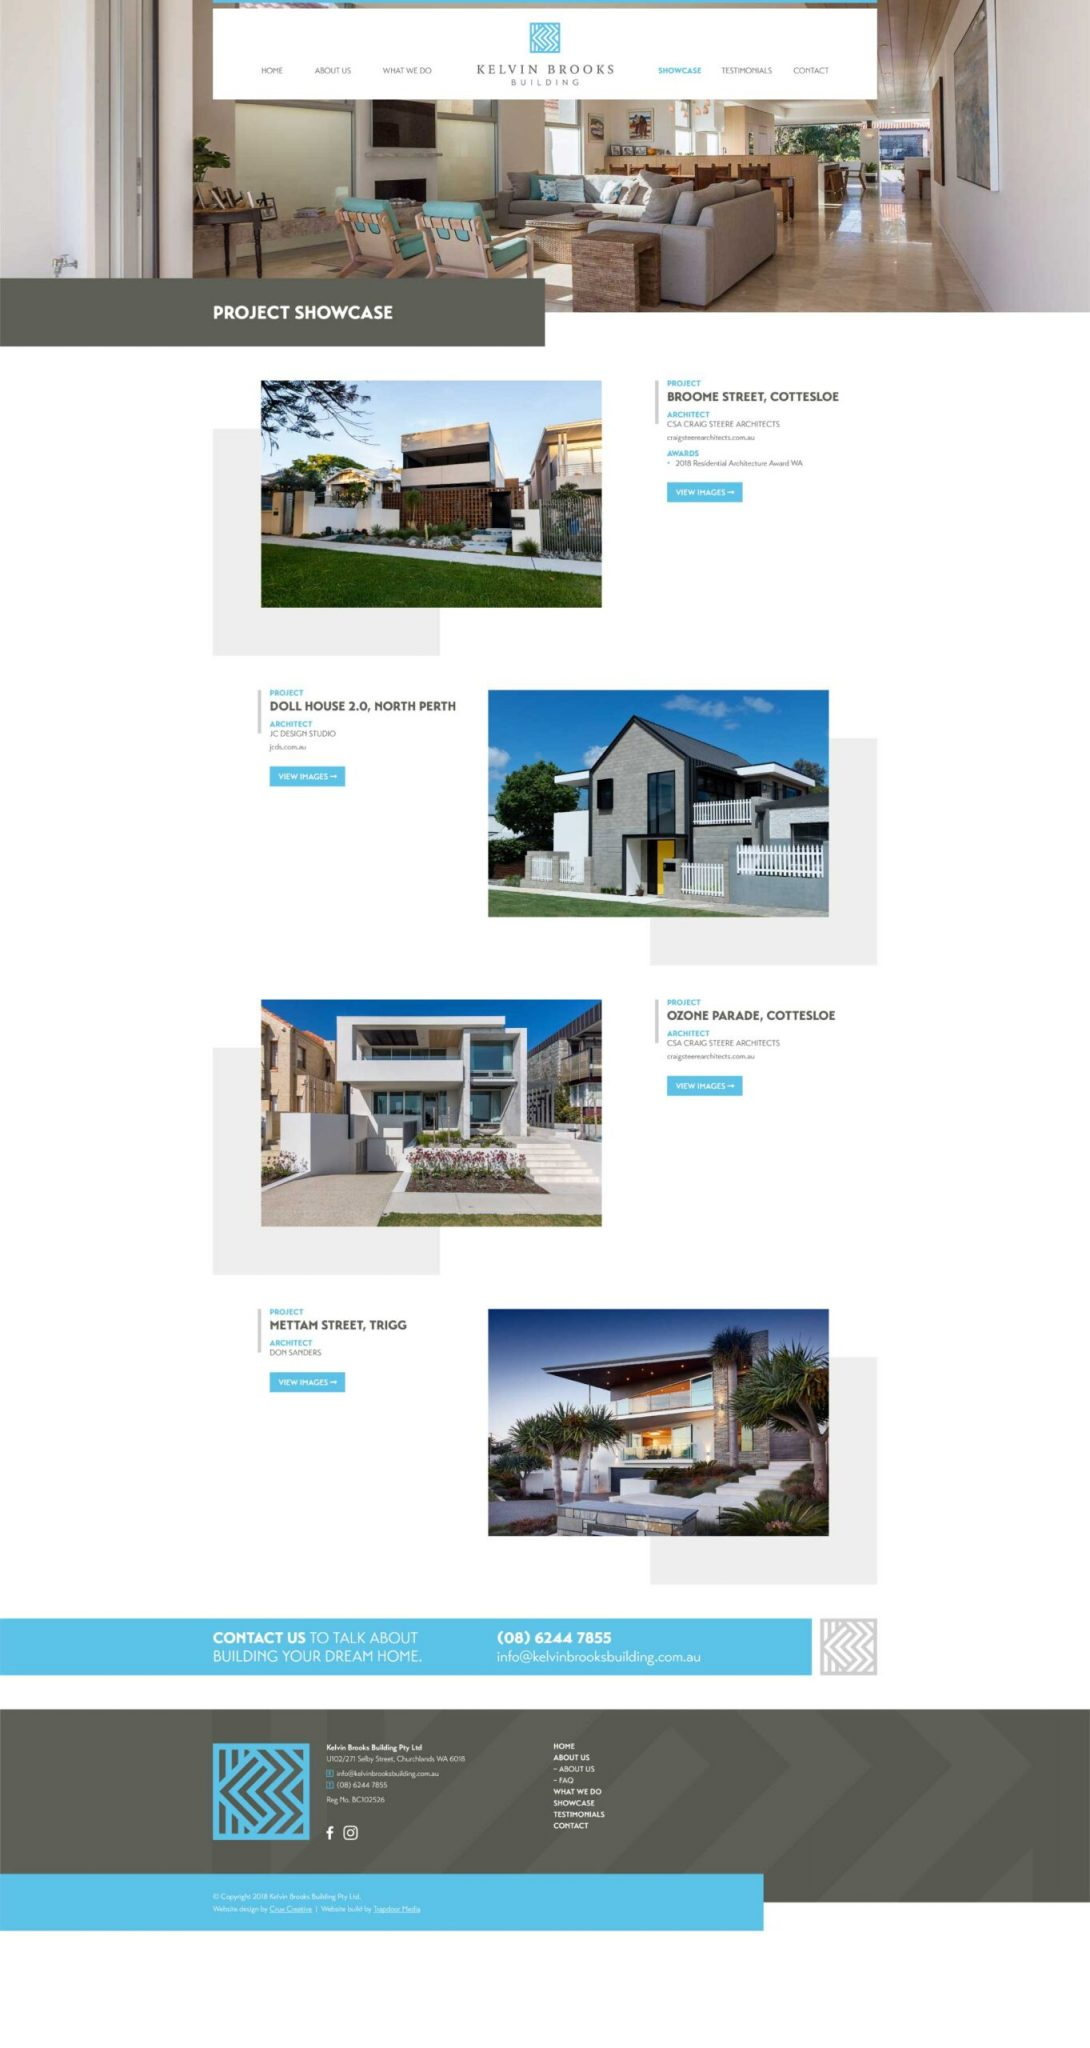 web design projects page kelvin brooks building